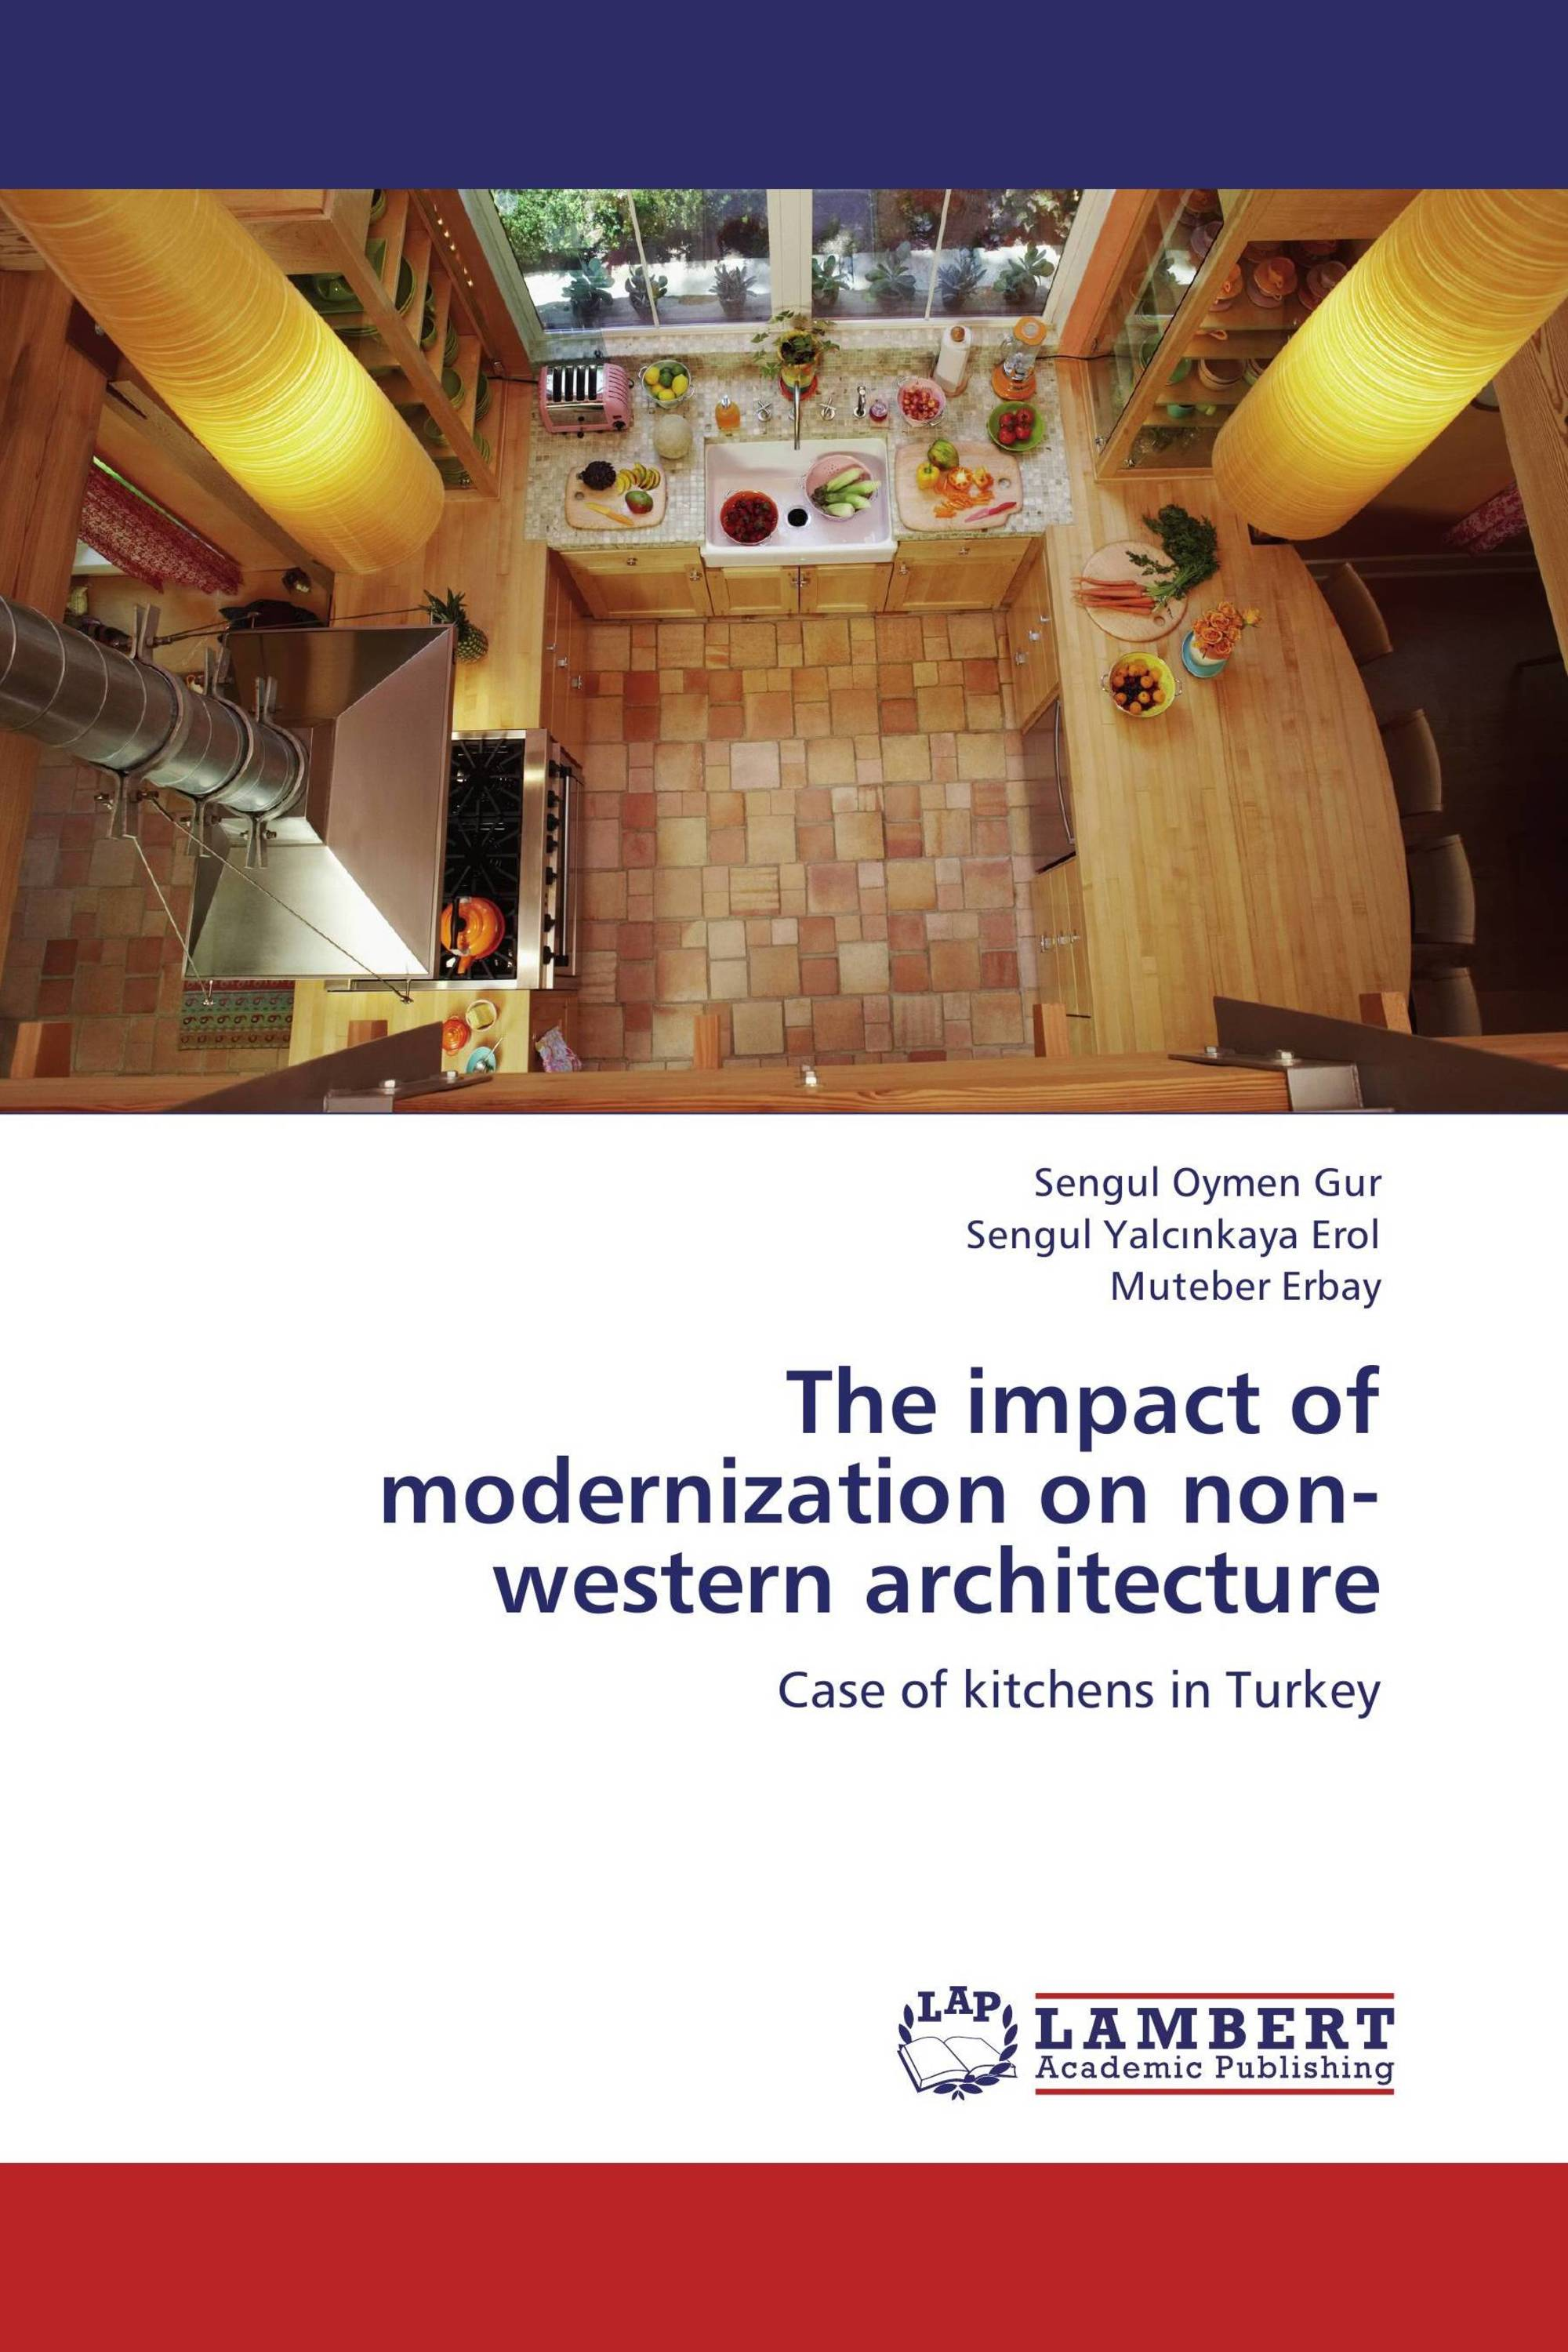 The impact of modernization on non-western architecture